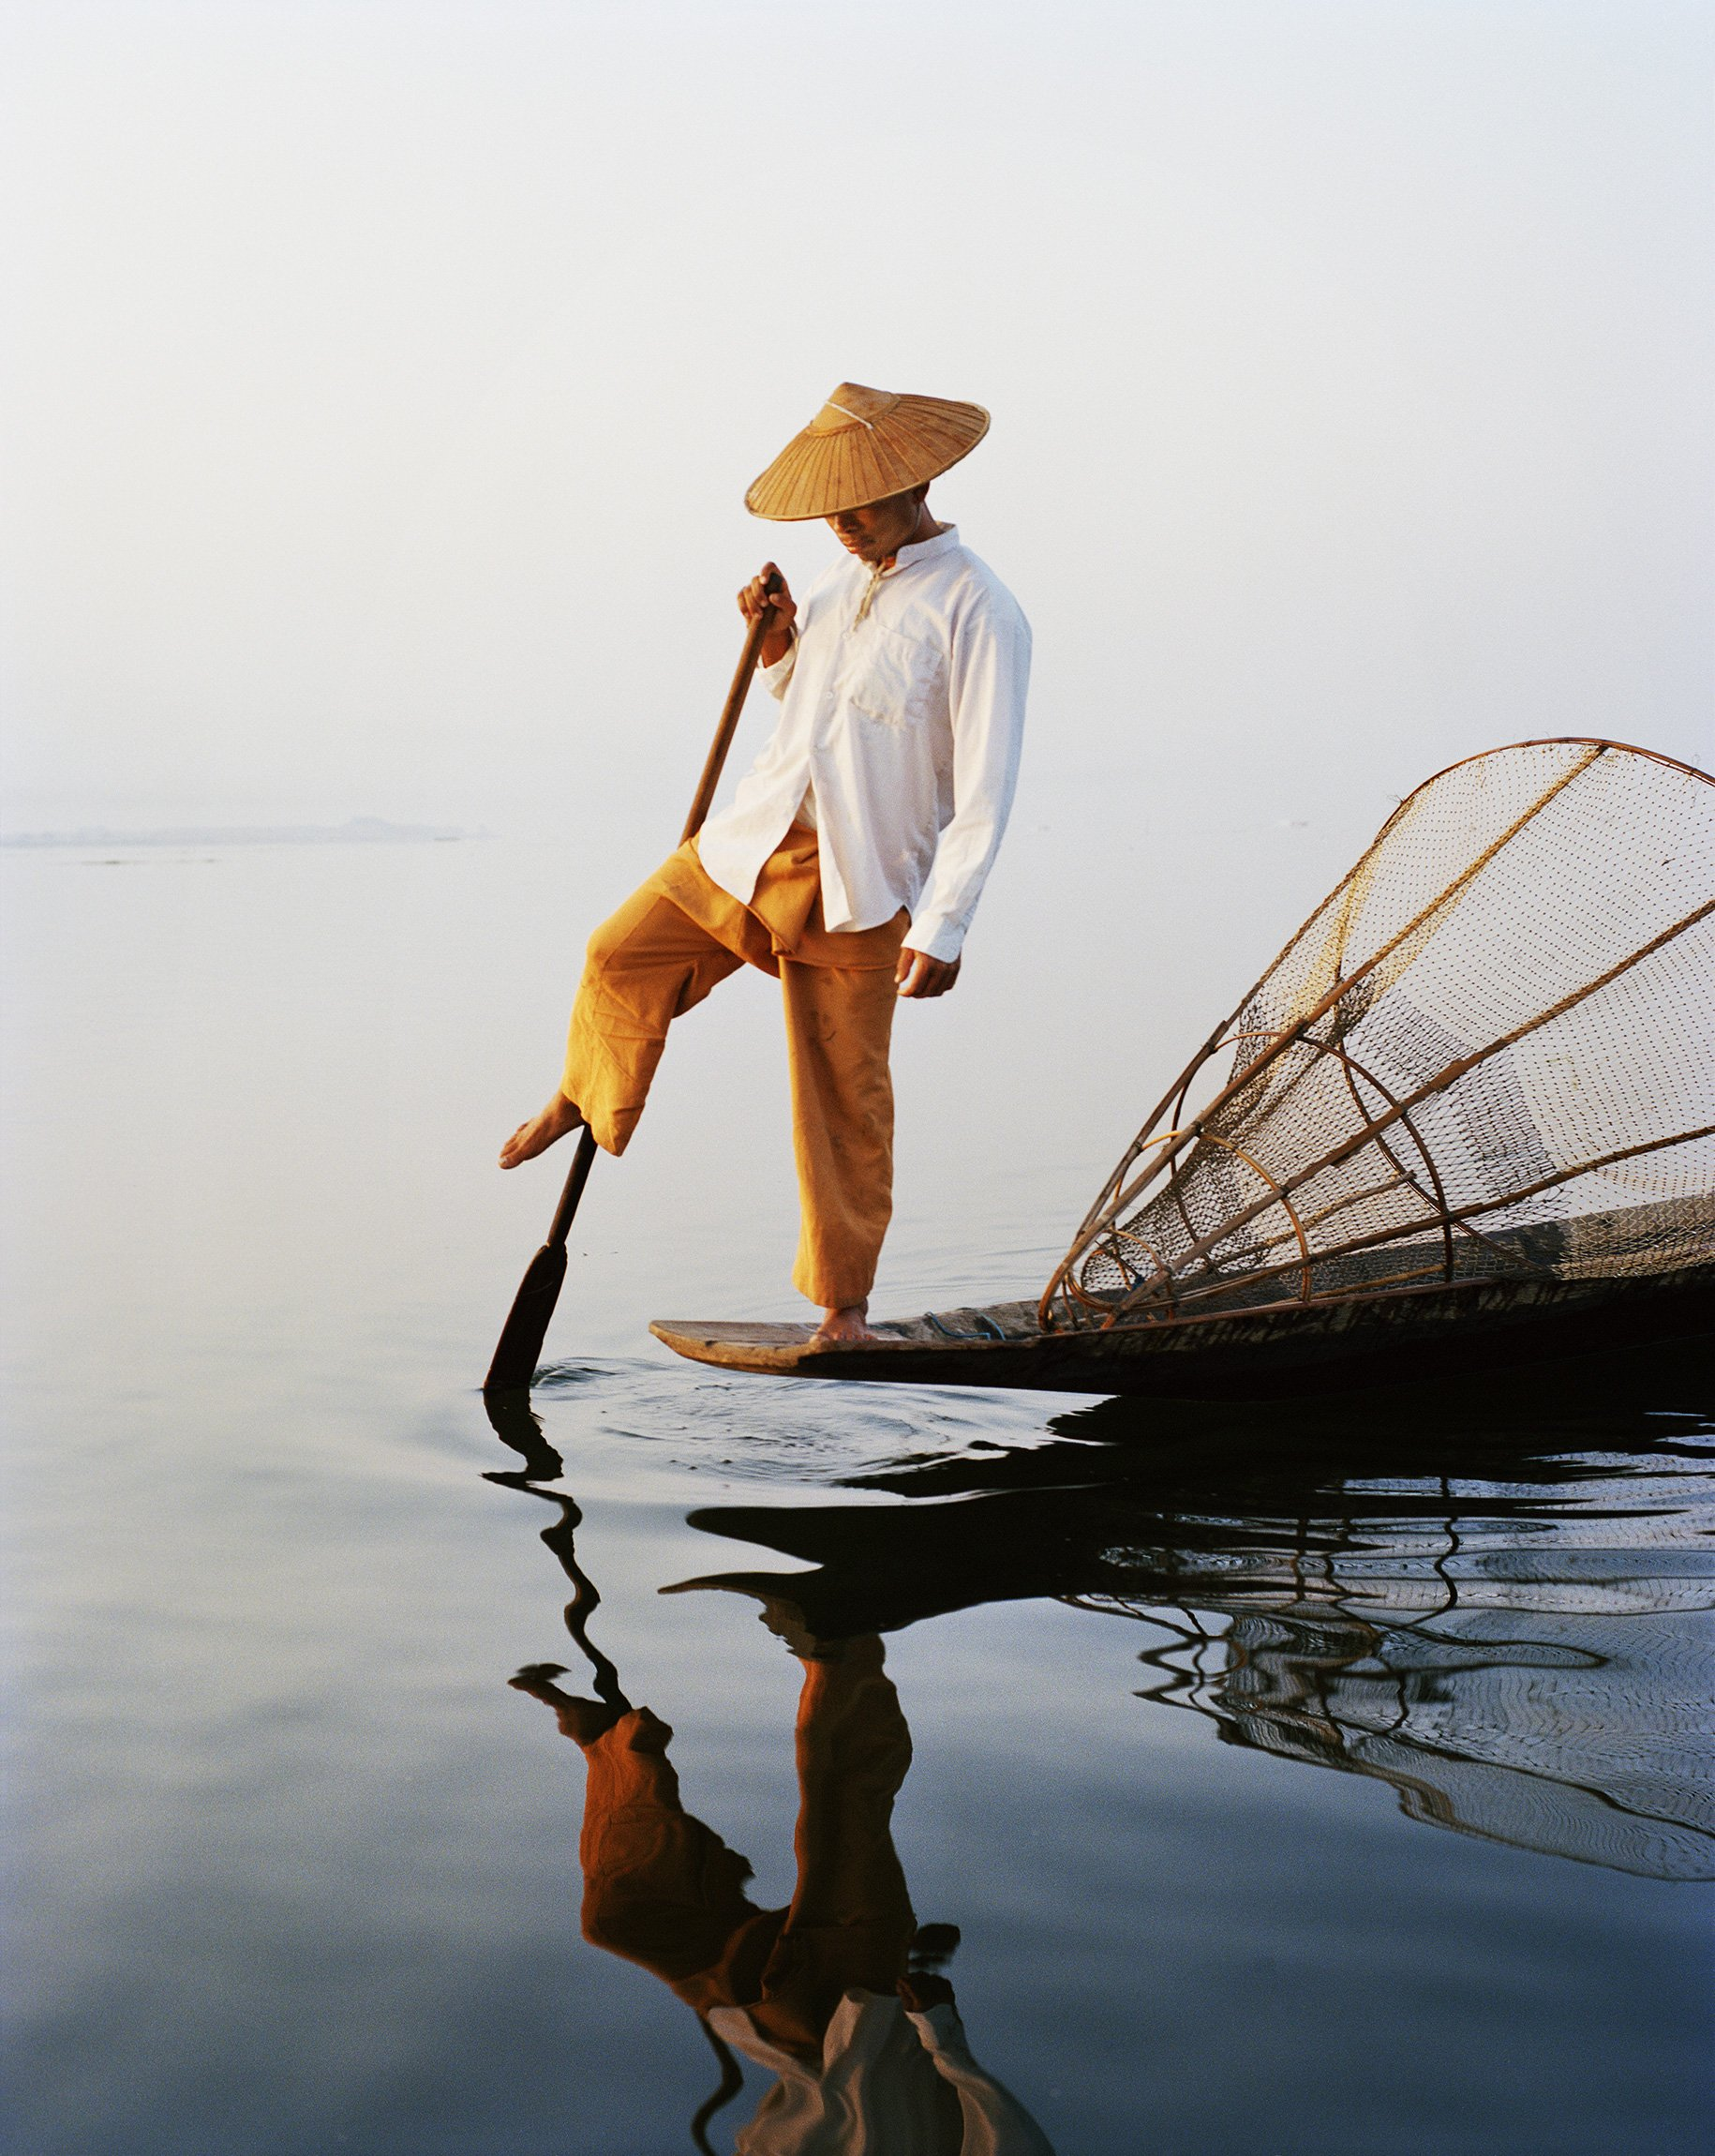 fisherman standing color photography in Myanmar by Frédéric Lagrange